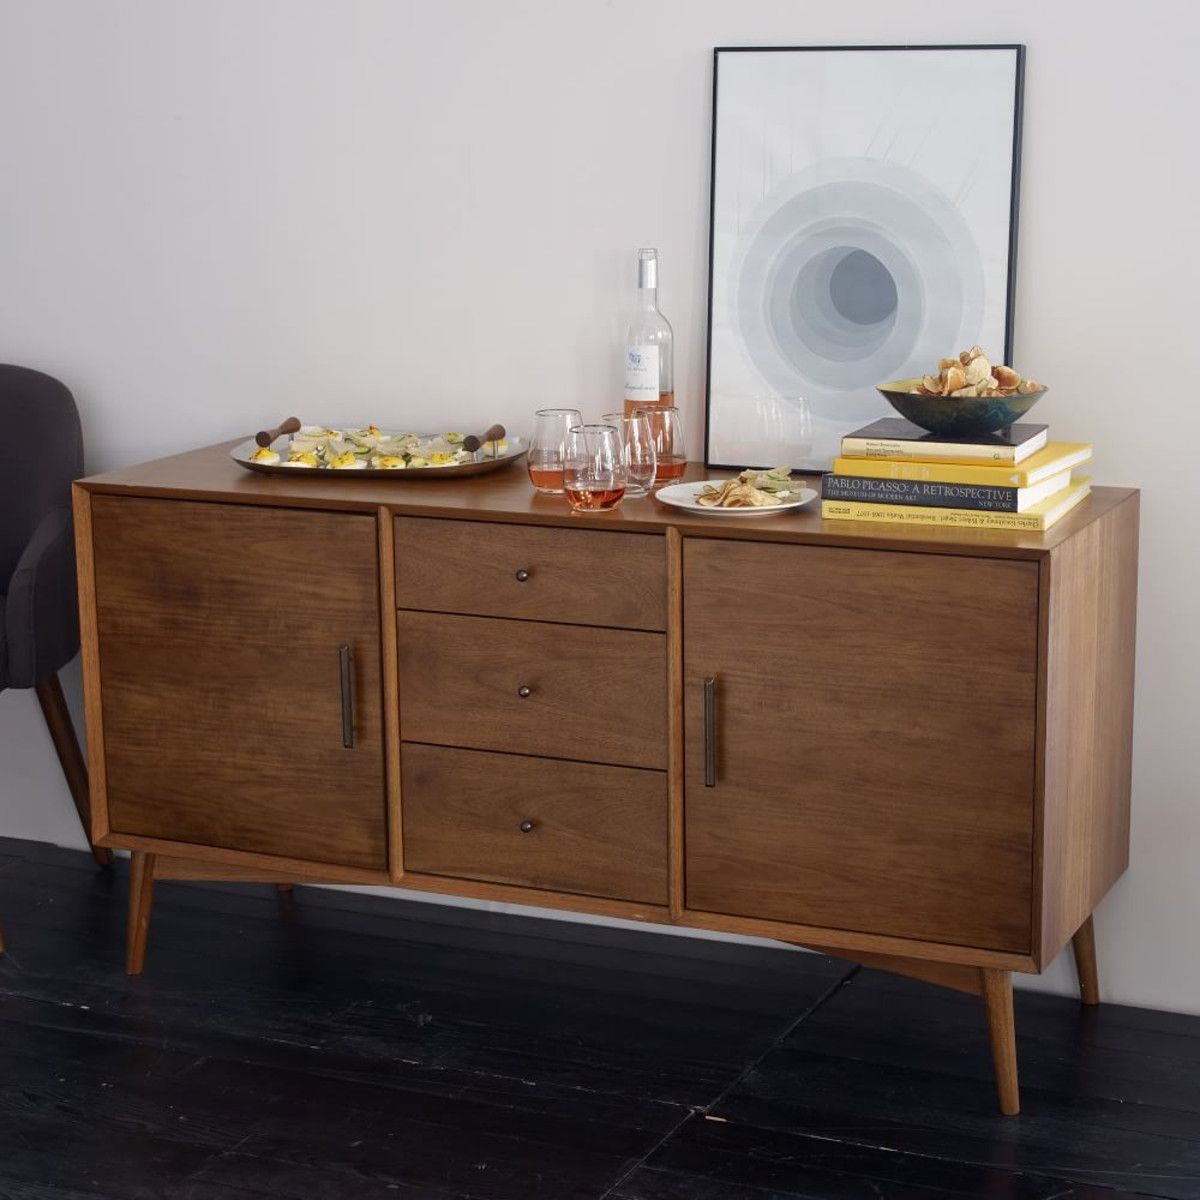 Sideboard Mid Century for the dining room you put the fancy cutlery table linen inside